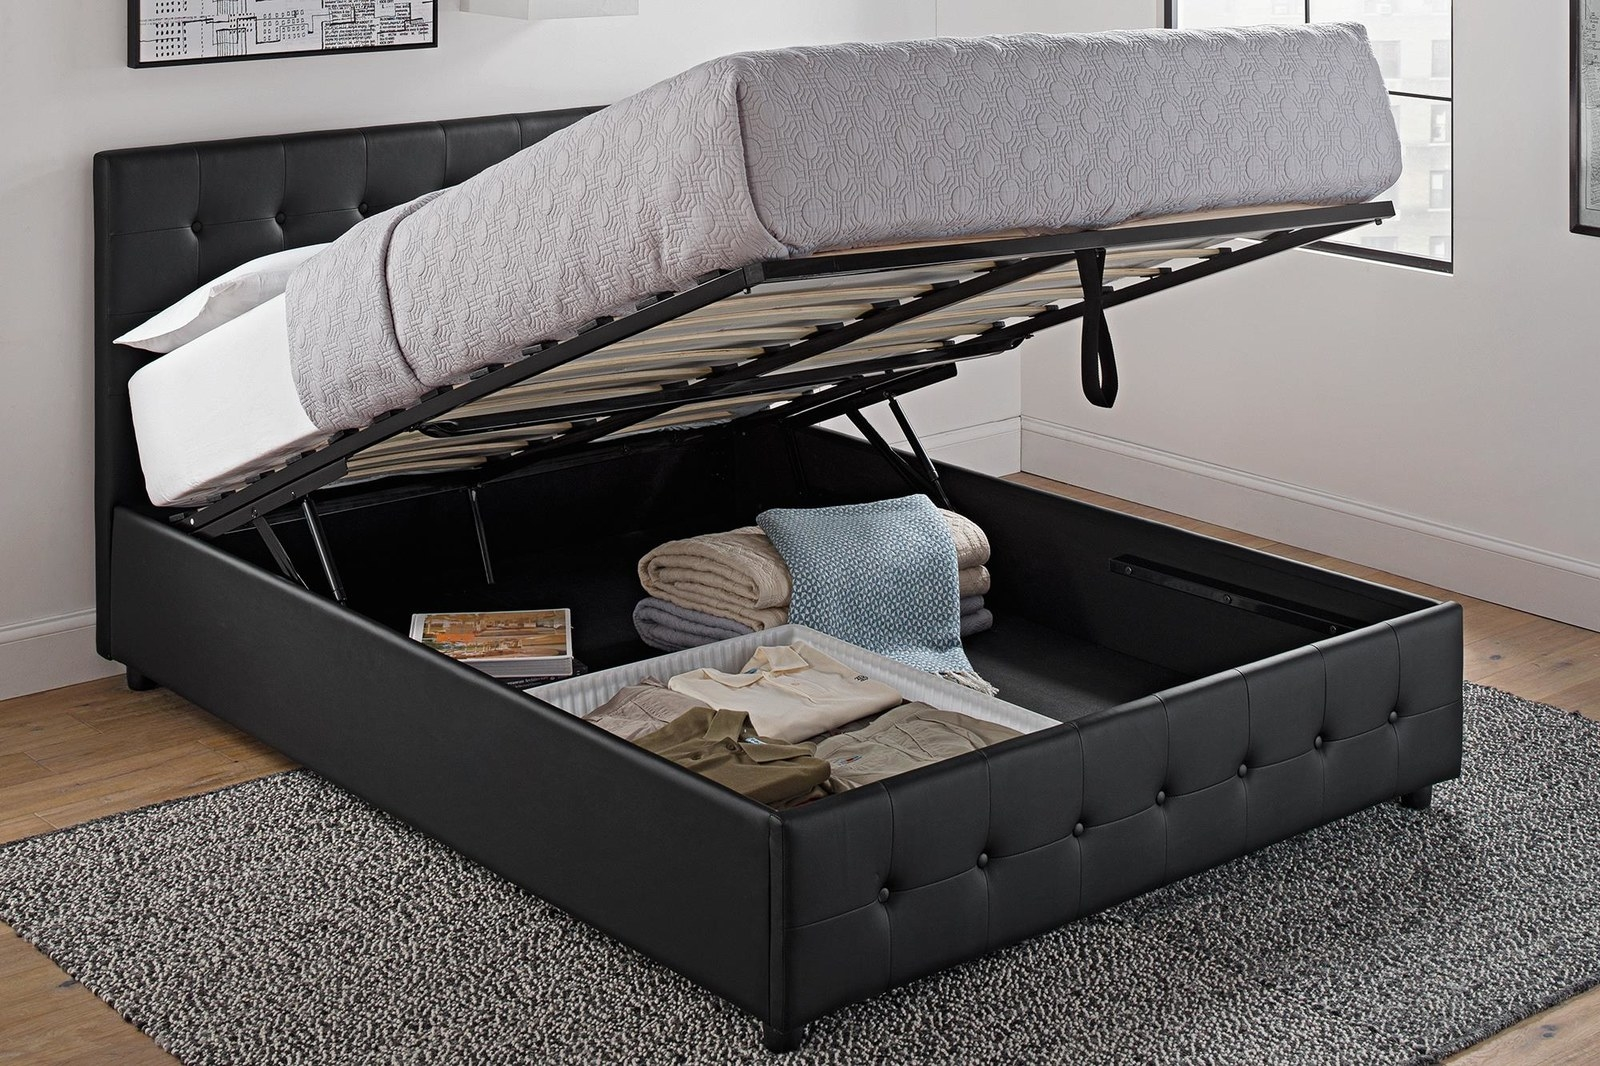 Beau A Storage Bed To Help You Survive And Thrive In A Tiny Ass Apartment With  Zero Closet Space.